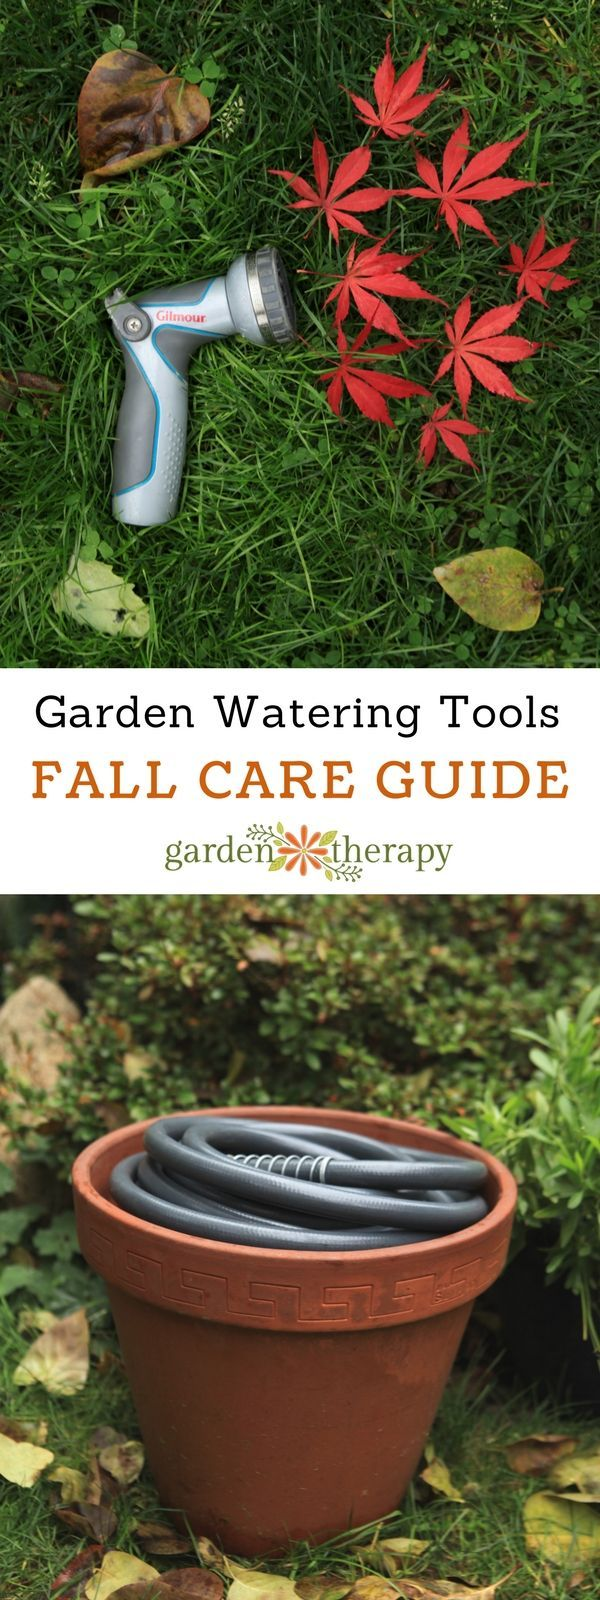 Garden watering tools care guide - Fall is a great time to inspect and repair watering tools no matter what climate you live in. If it becomes a habit to regularly maintain the tools before the cold of winter comes, you will be sure to start off the next season on the right foot. Before the first frost, have a look at your faucets, hoses, nozzles, and sprinklers. This fall garden watering tools guide will share the best ways to clean, repair, and store them for the winter.